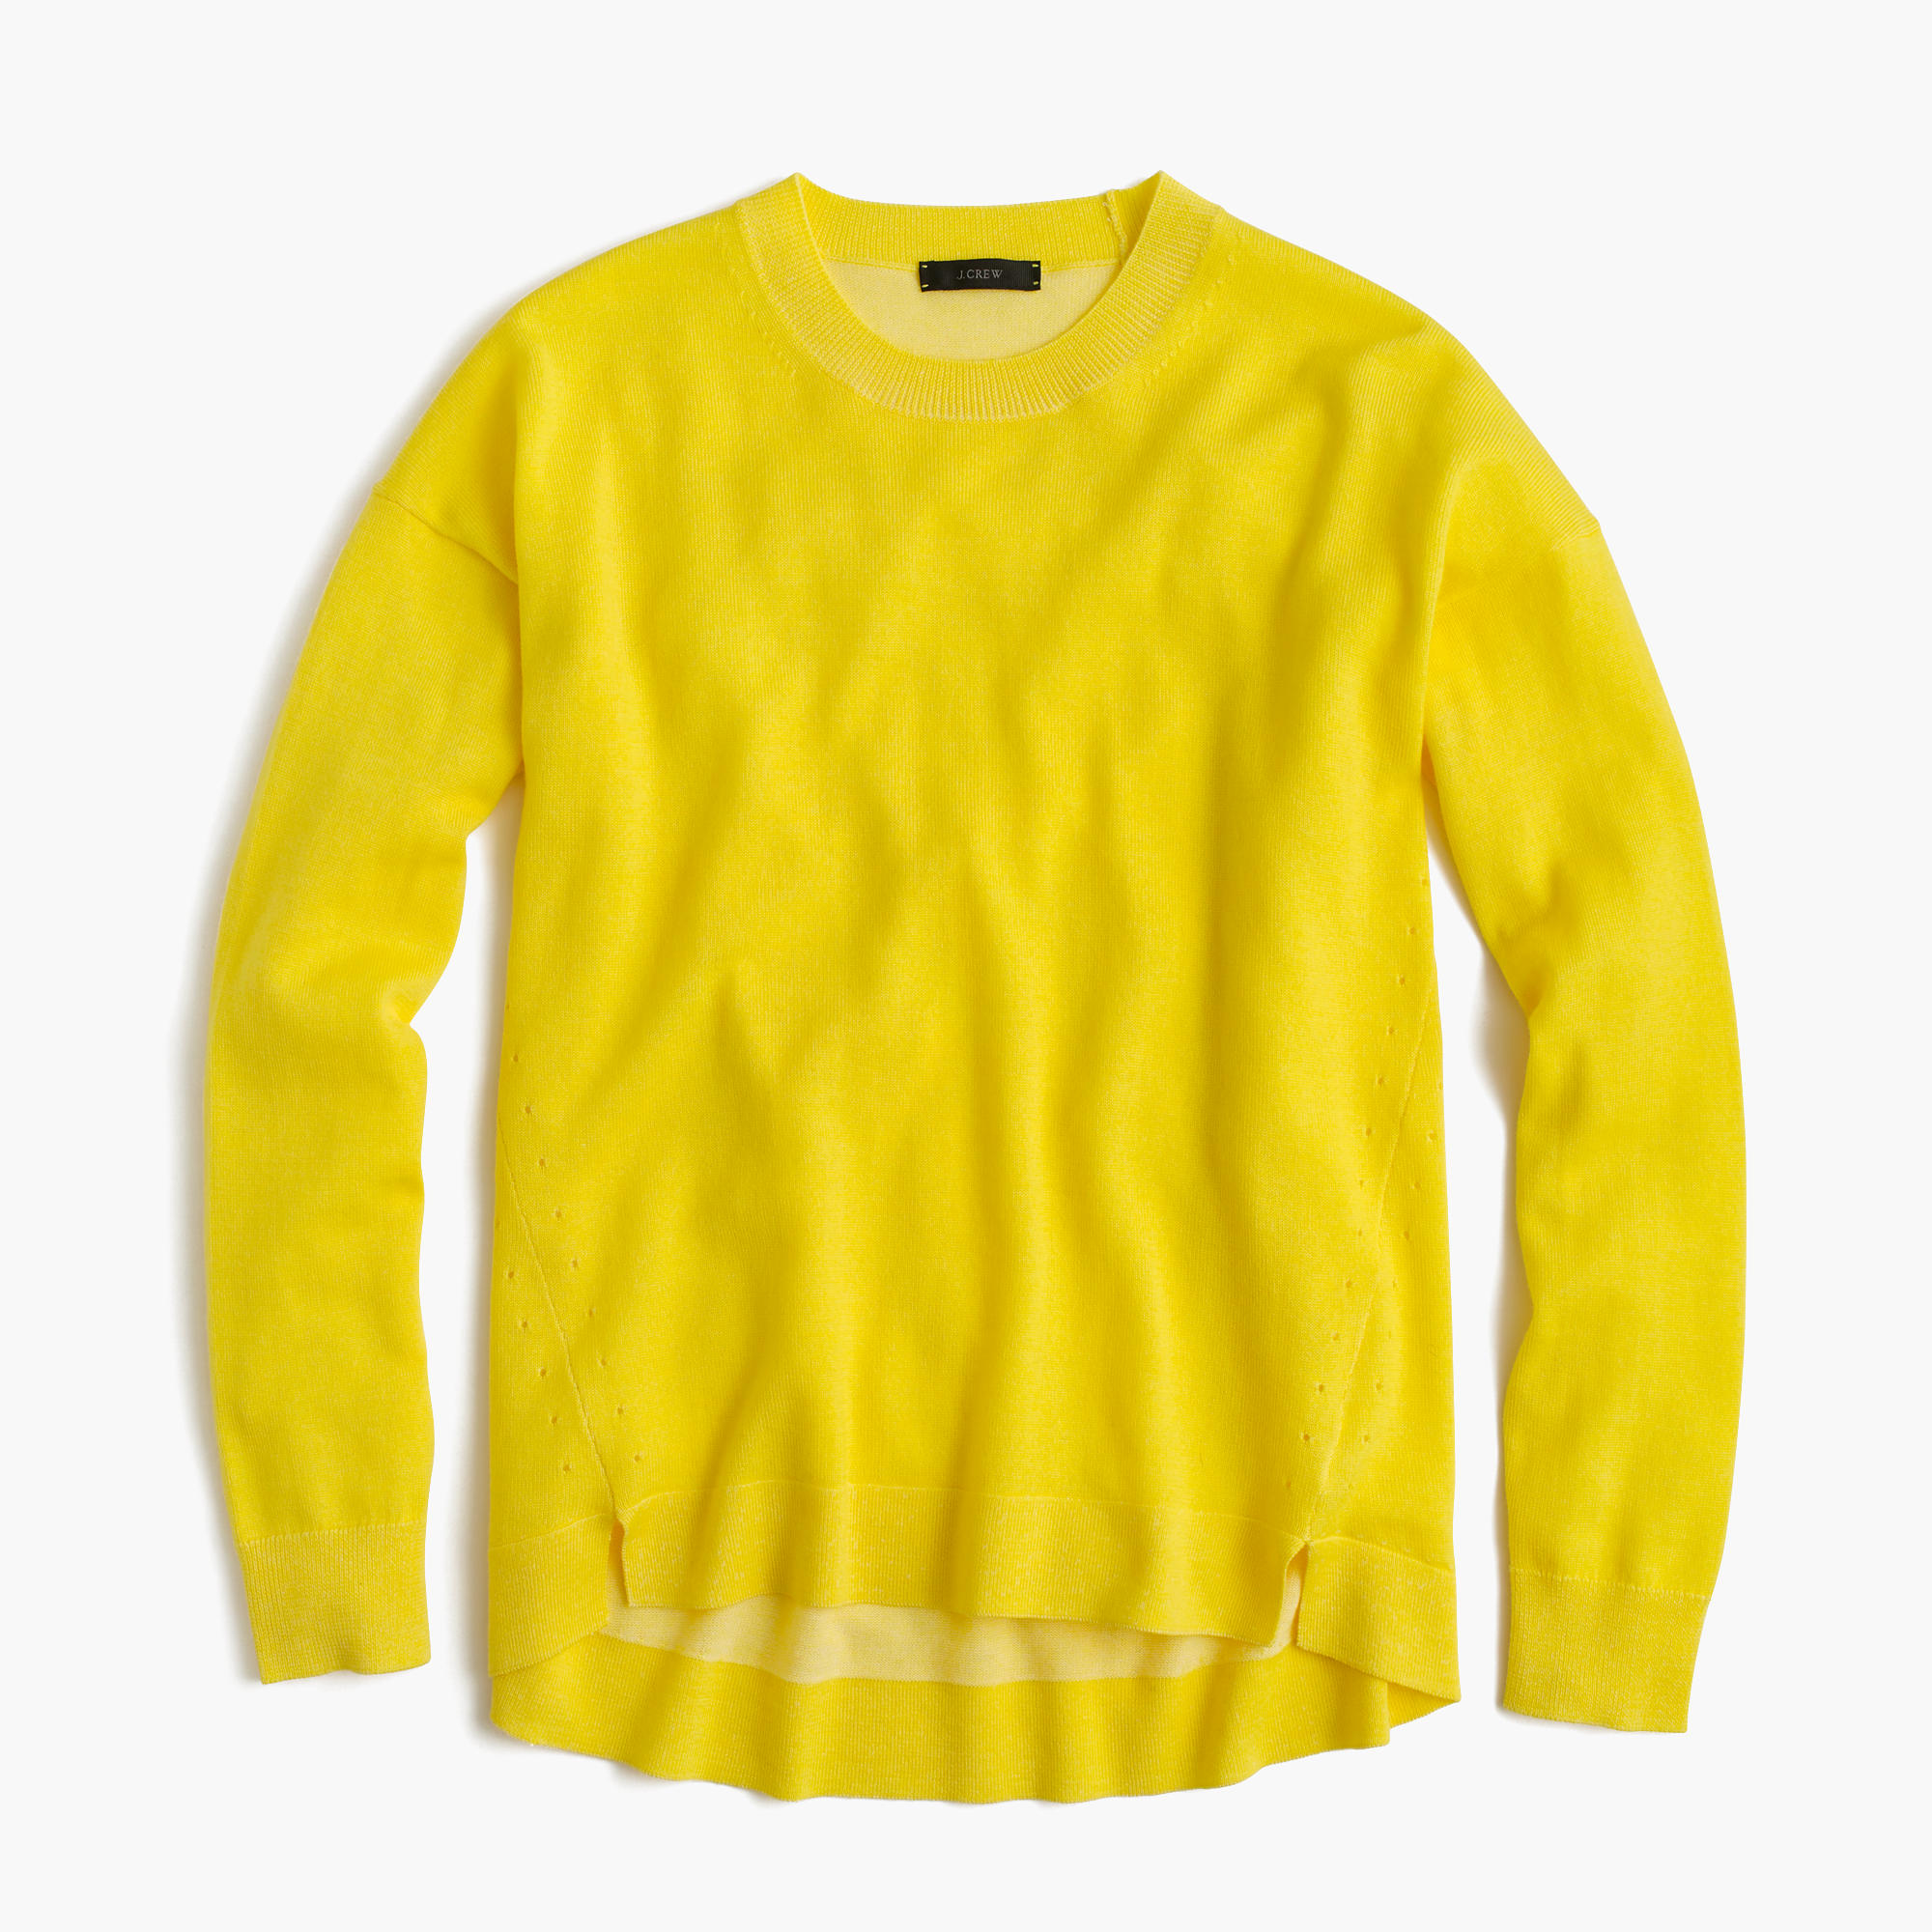 J.crew Lightweight Wool Tunic Sweater in Yellow | Lyst